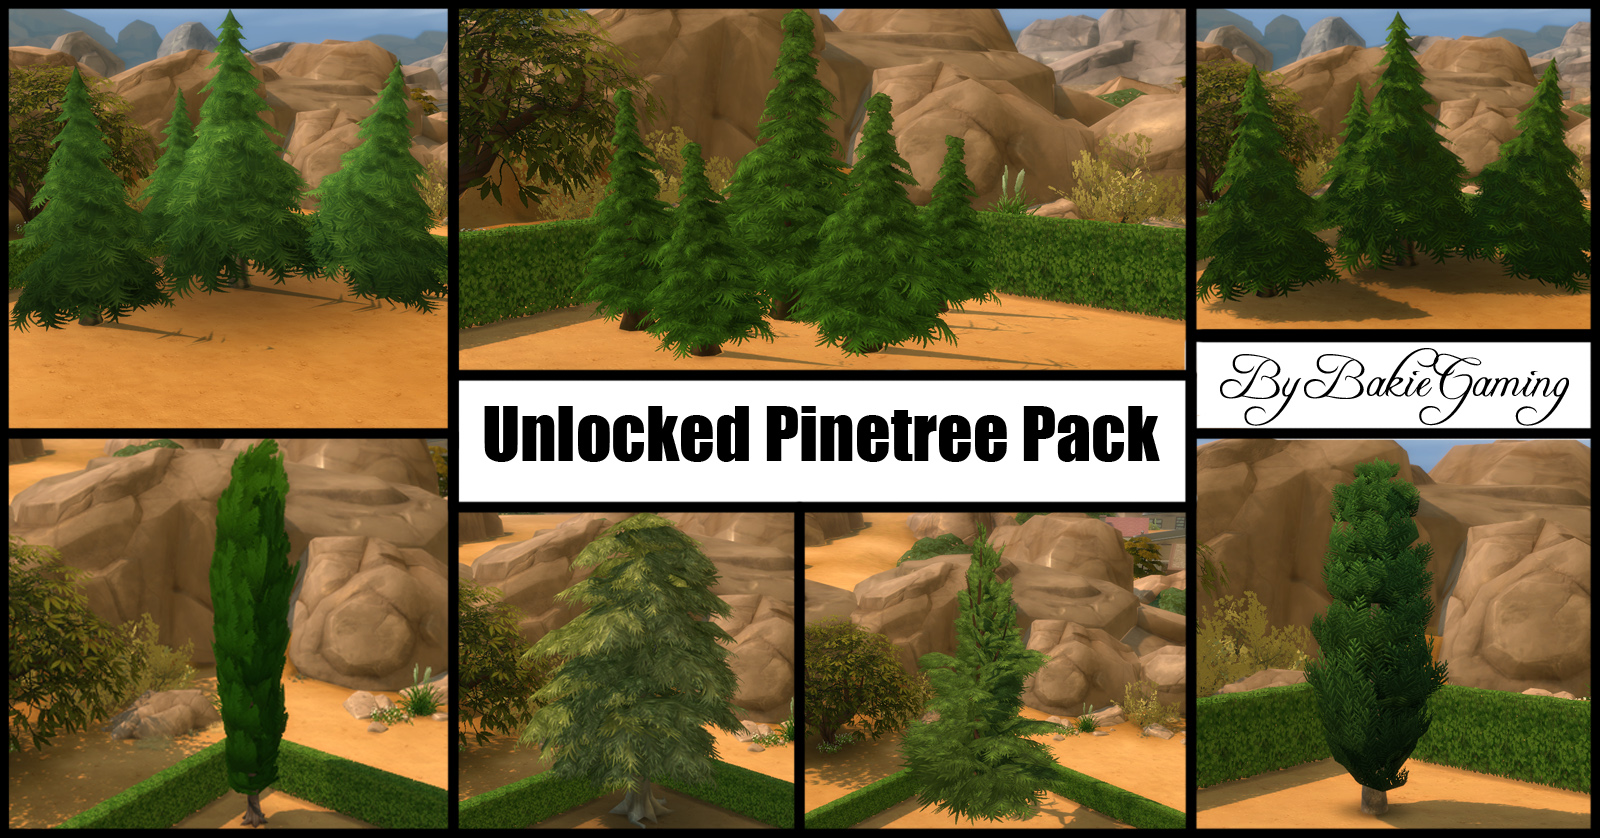 Unlocked Pinetree Pack (7 new trees) by Bakie